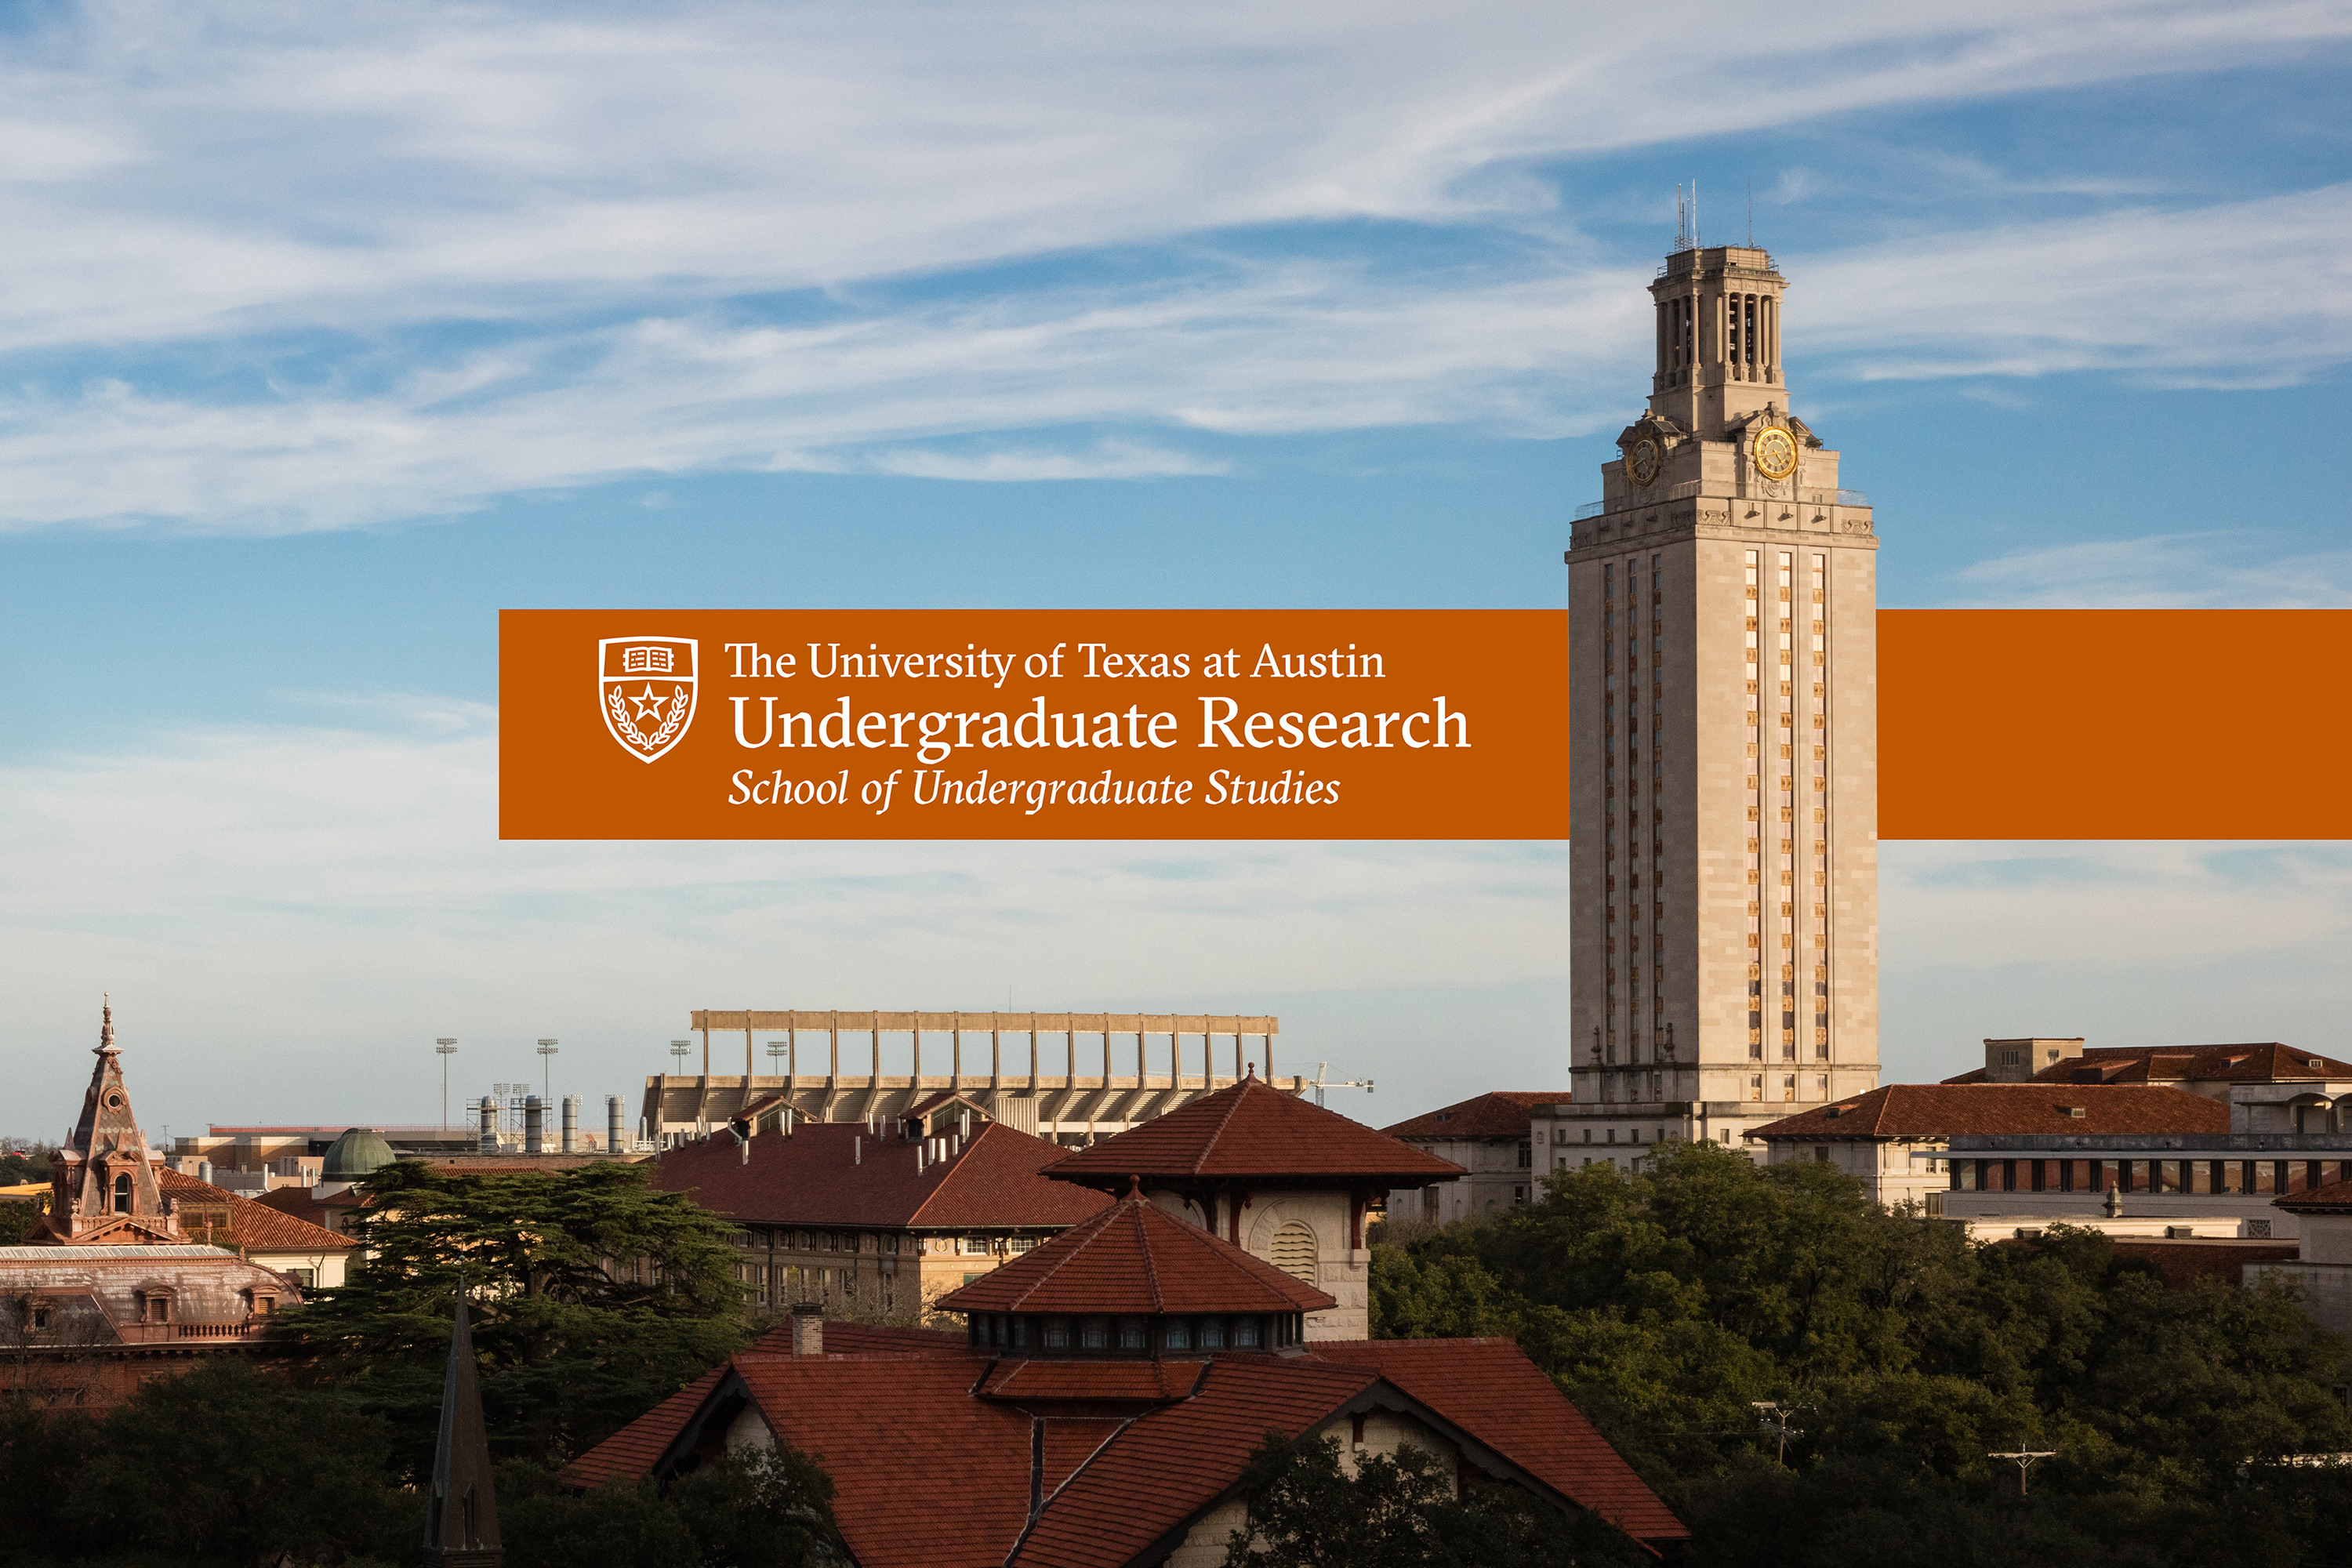 The Office of Undergraduate Research